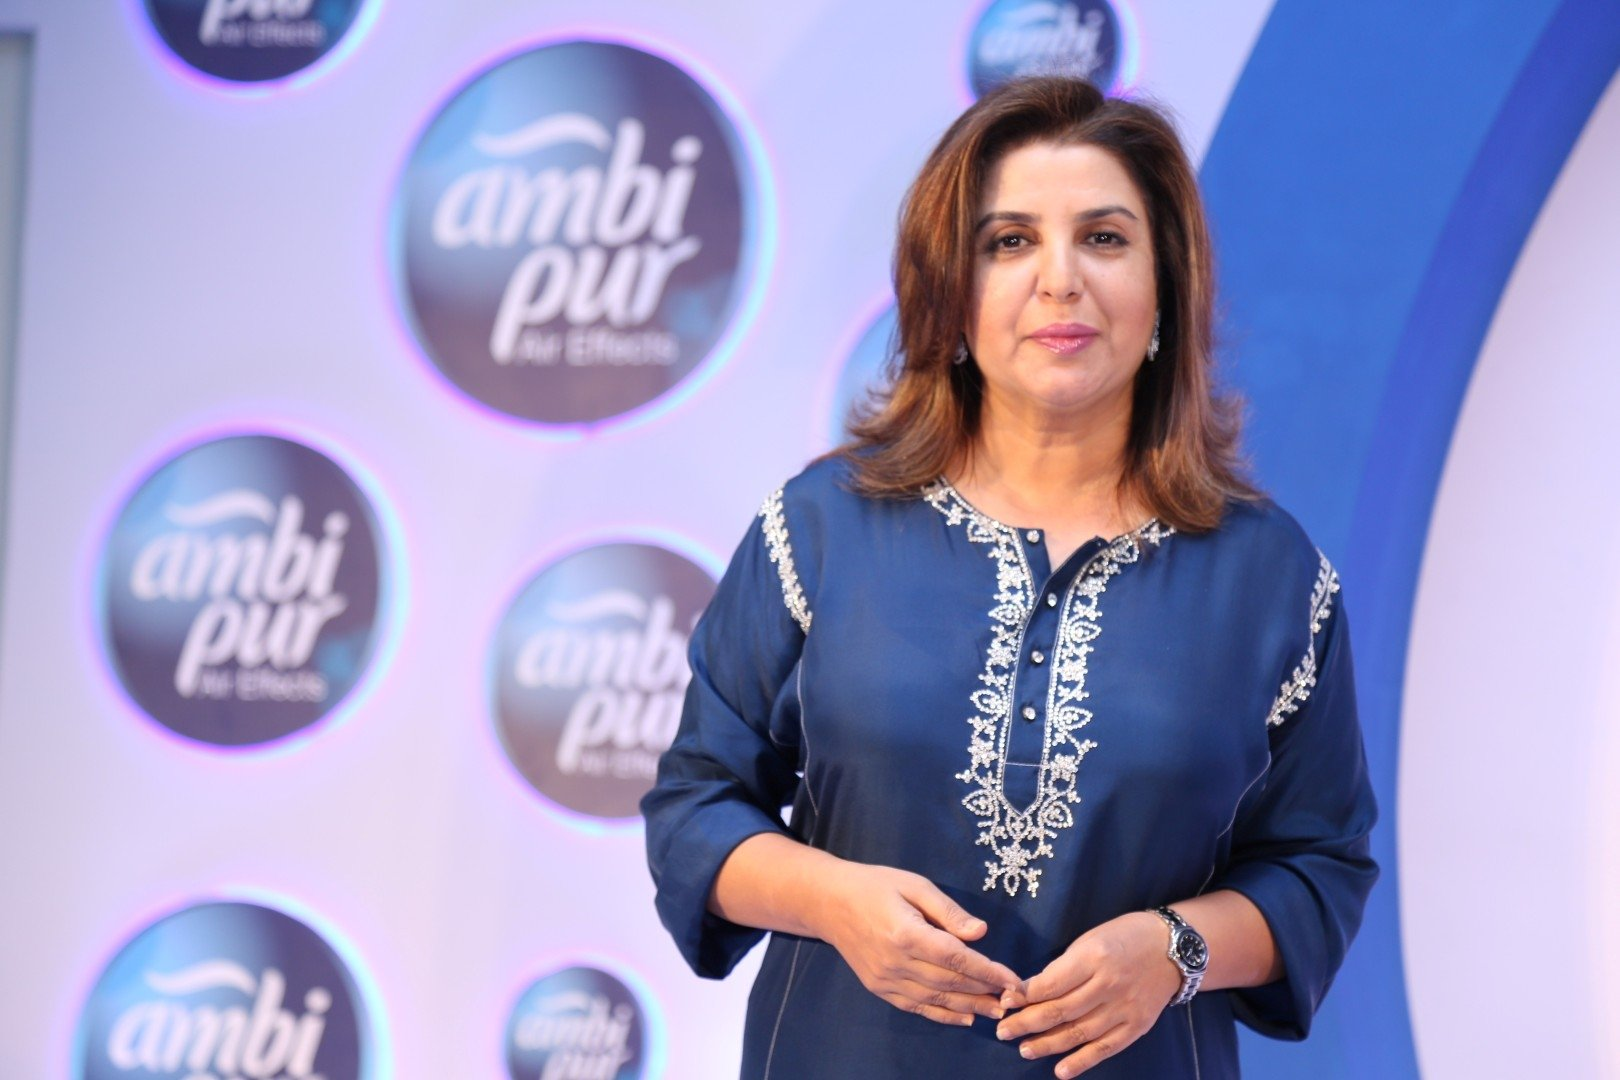 Filmmaker Farah Khan during a promotional event by Ambi Pur, in Mumbai